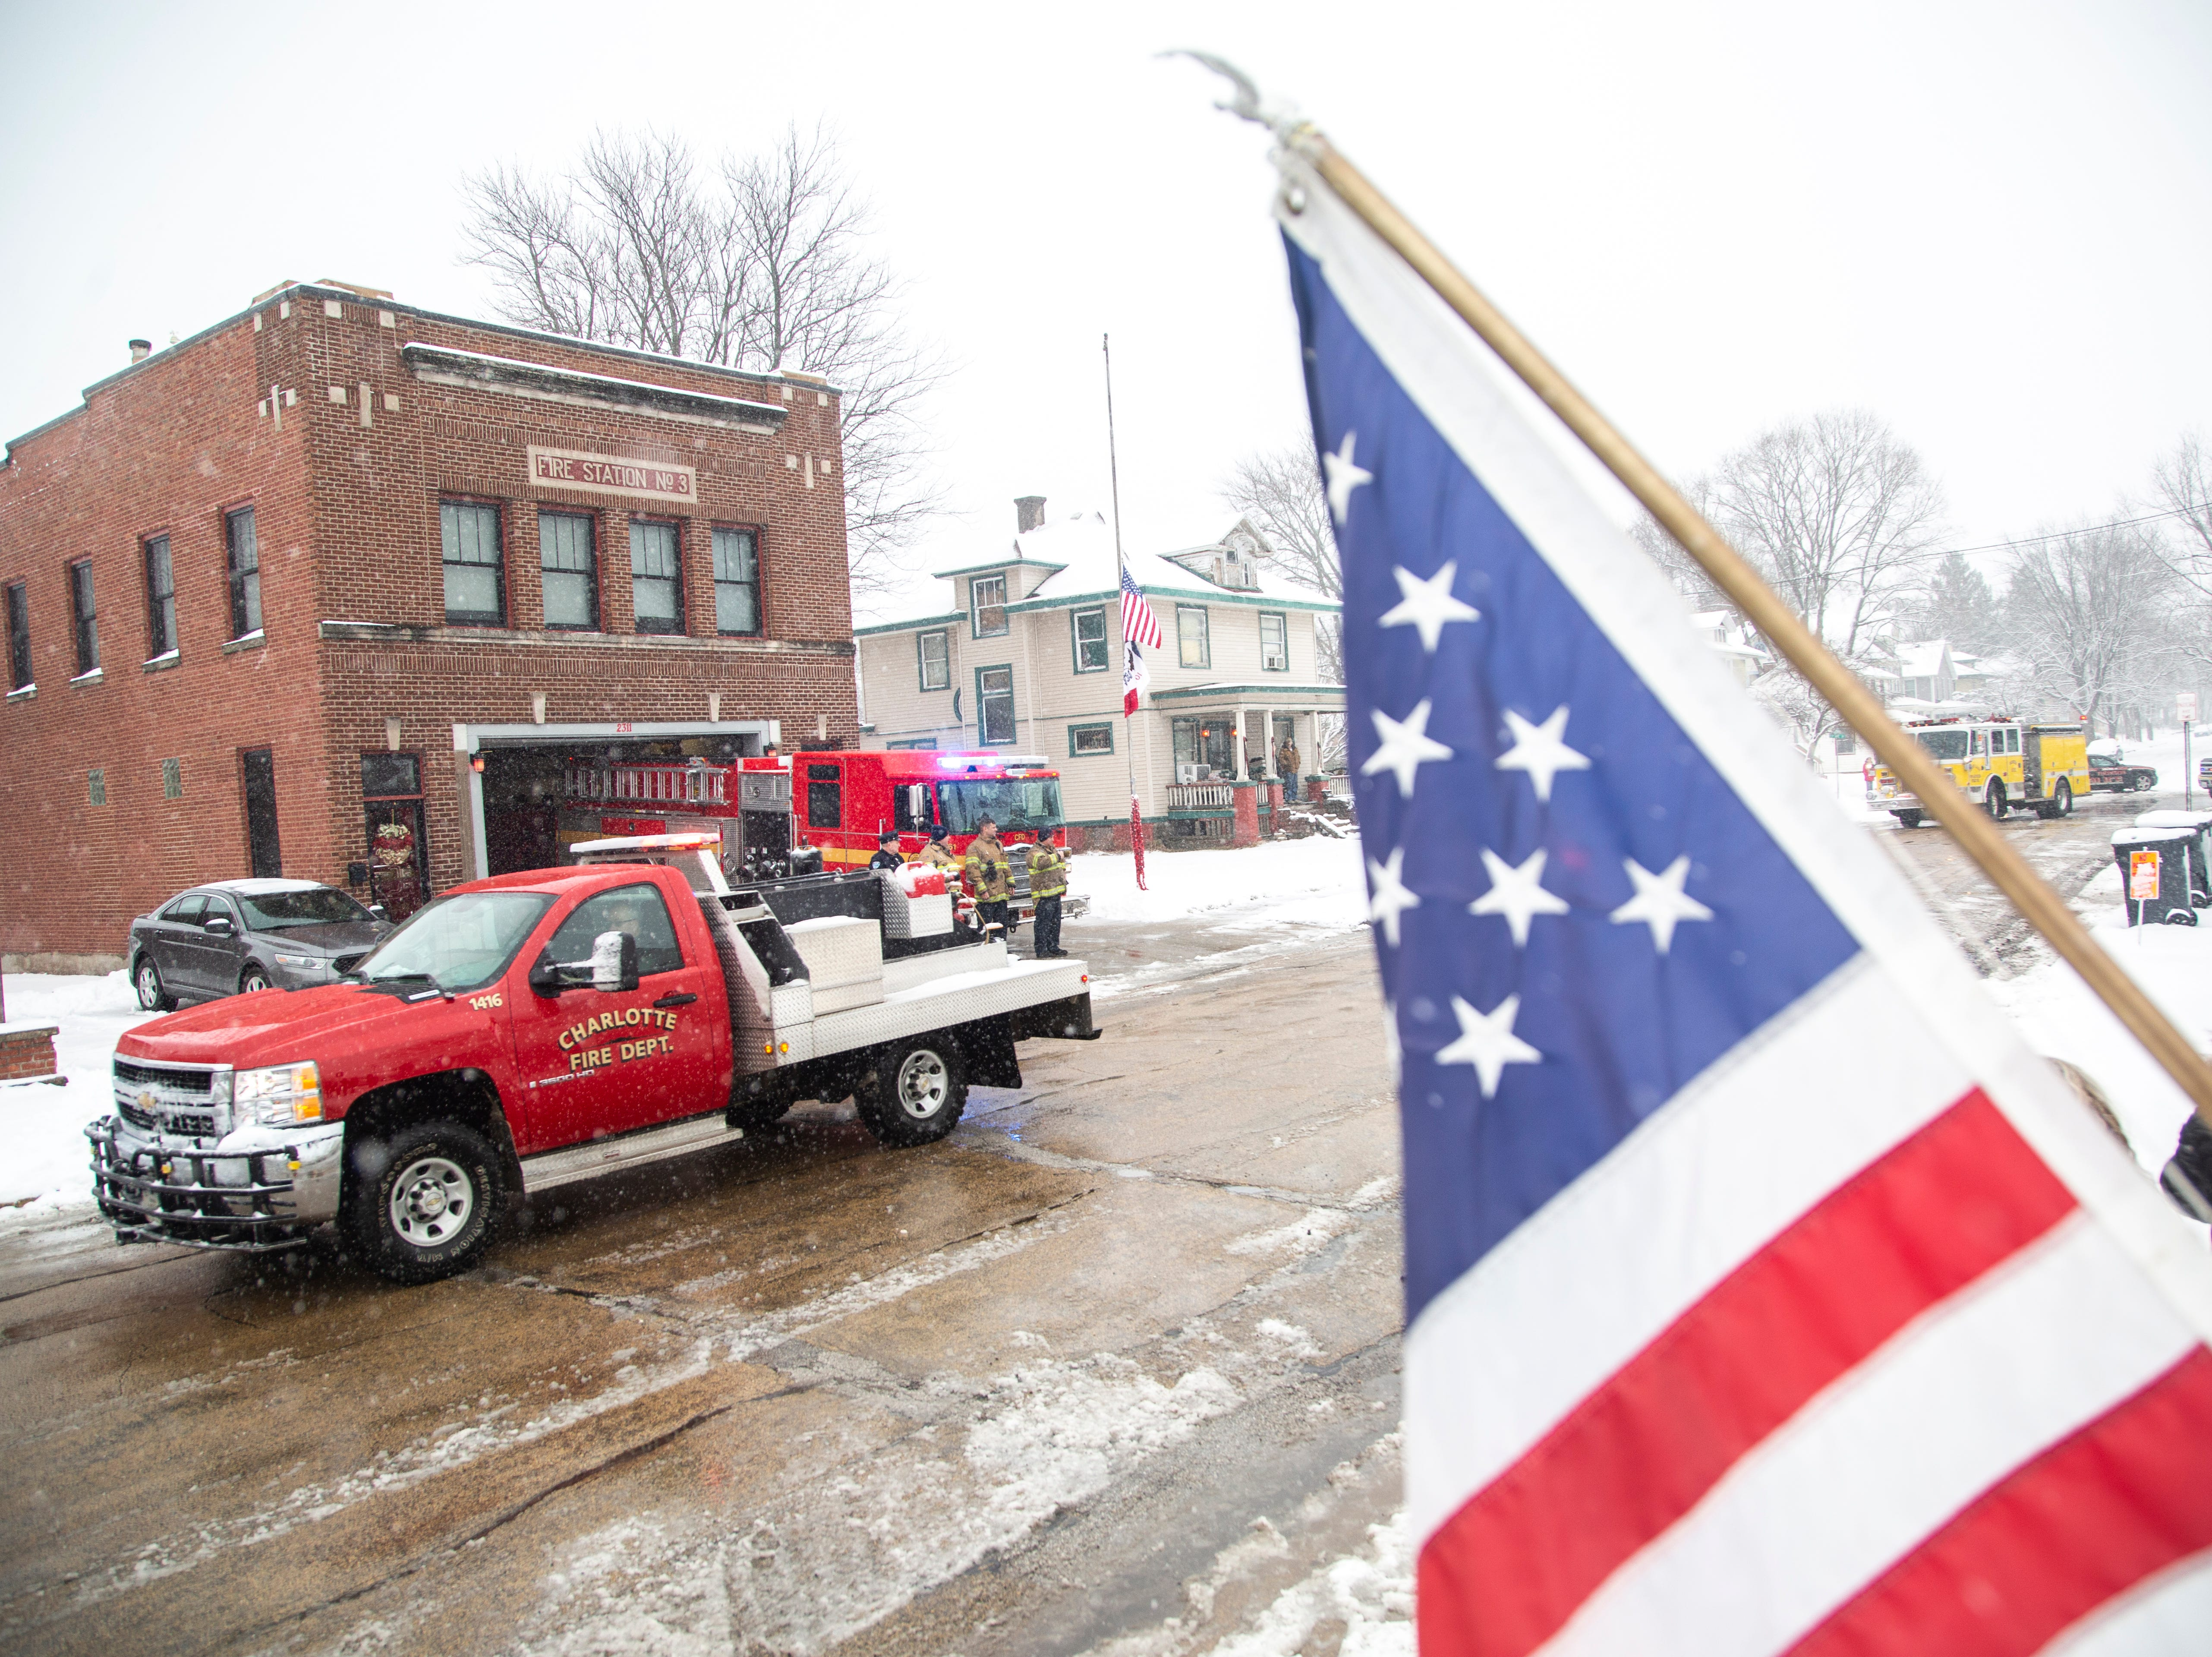 Firetrucks drive in a procession past Fire Station No. 3 as supporters look on after the public memorial service for Lt. Eric Hosette on Saturday, Jan. 12, 2019, along 2nd Street in Clinton, Iowa.